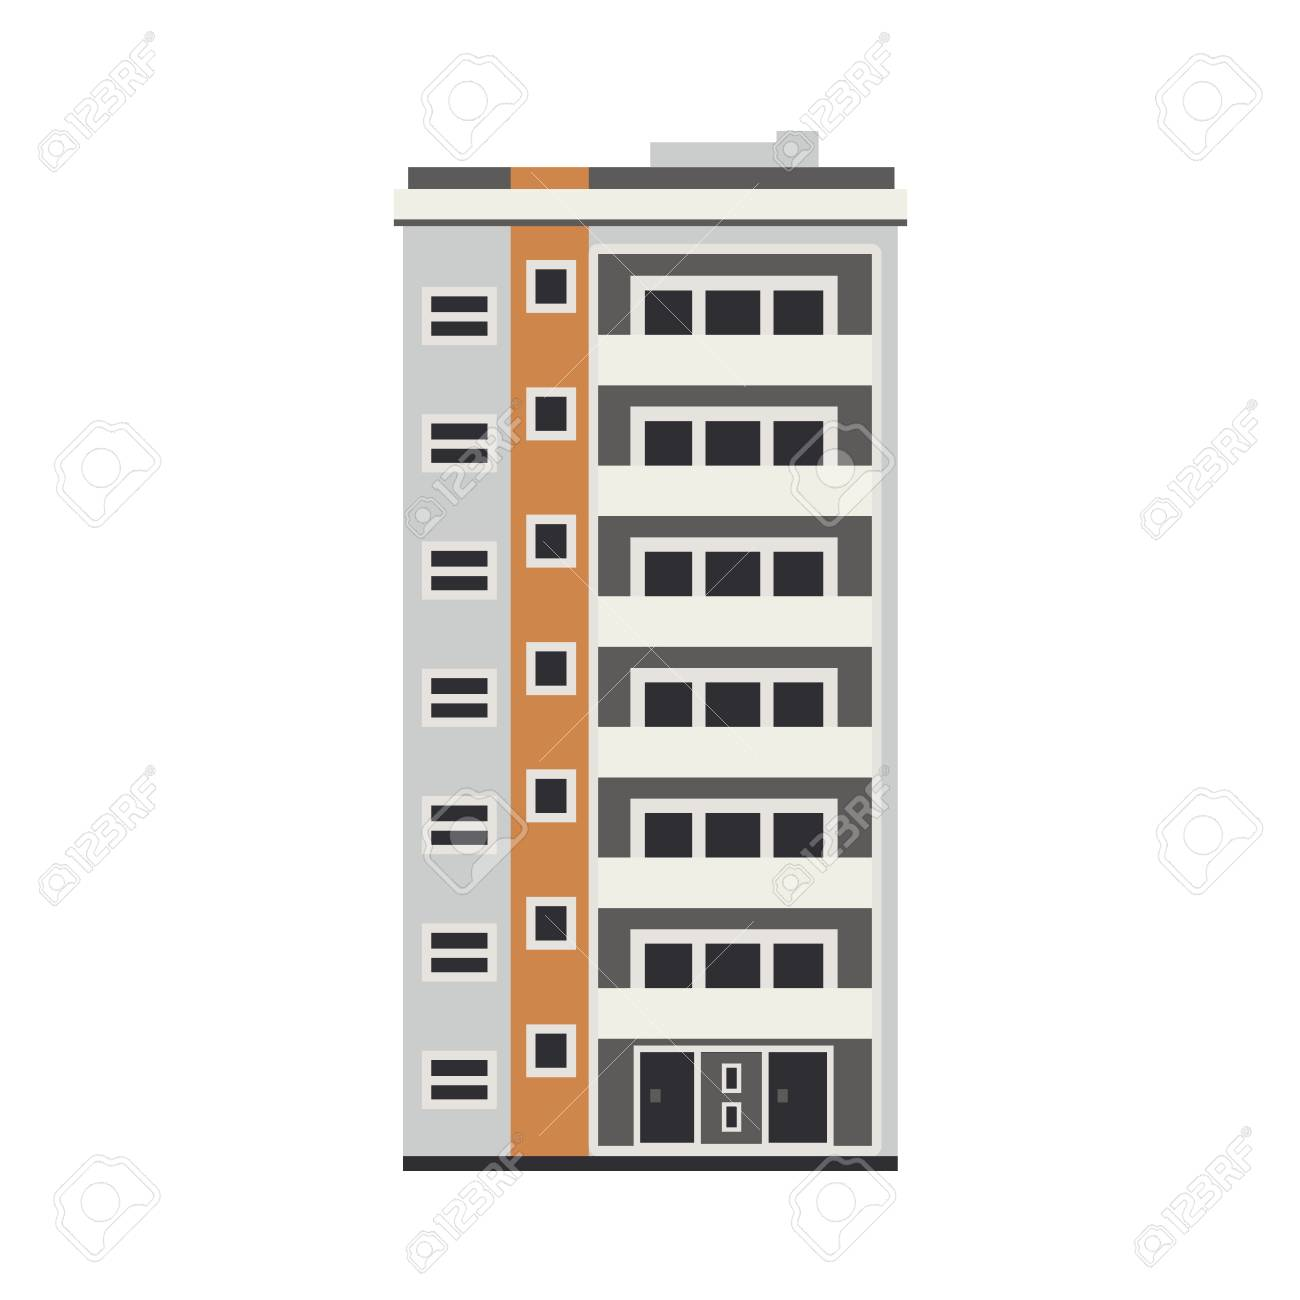 Apartment building house exterior icon. City modern architecture, dormitory area object. Dwelling house, residental building skyscraper. Cityscape design element. Vector flat illustration - 100174808